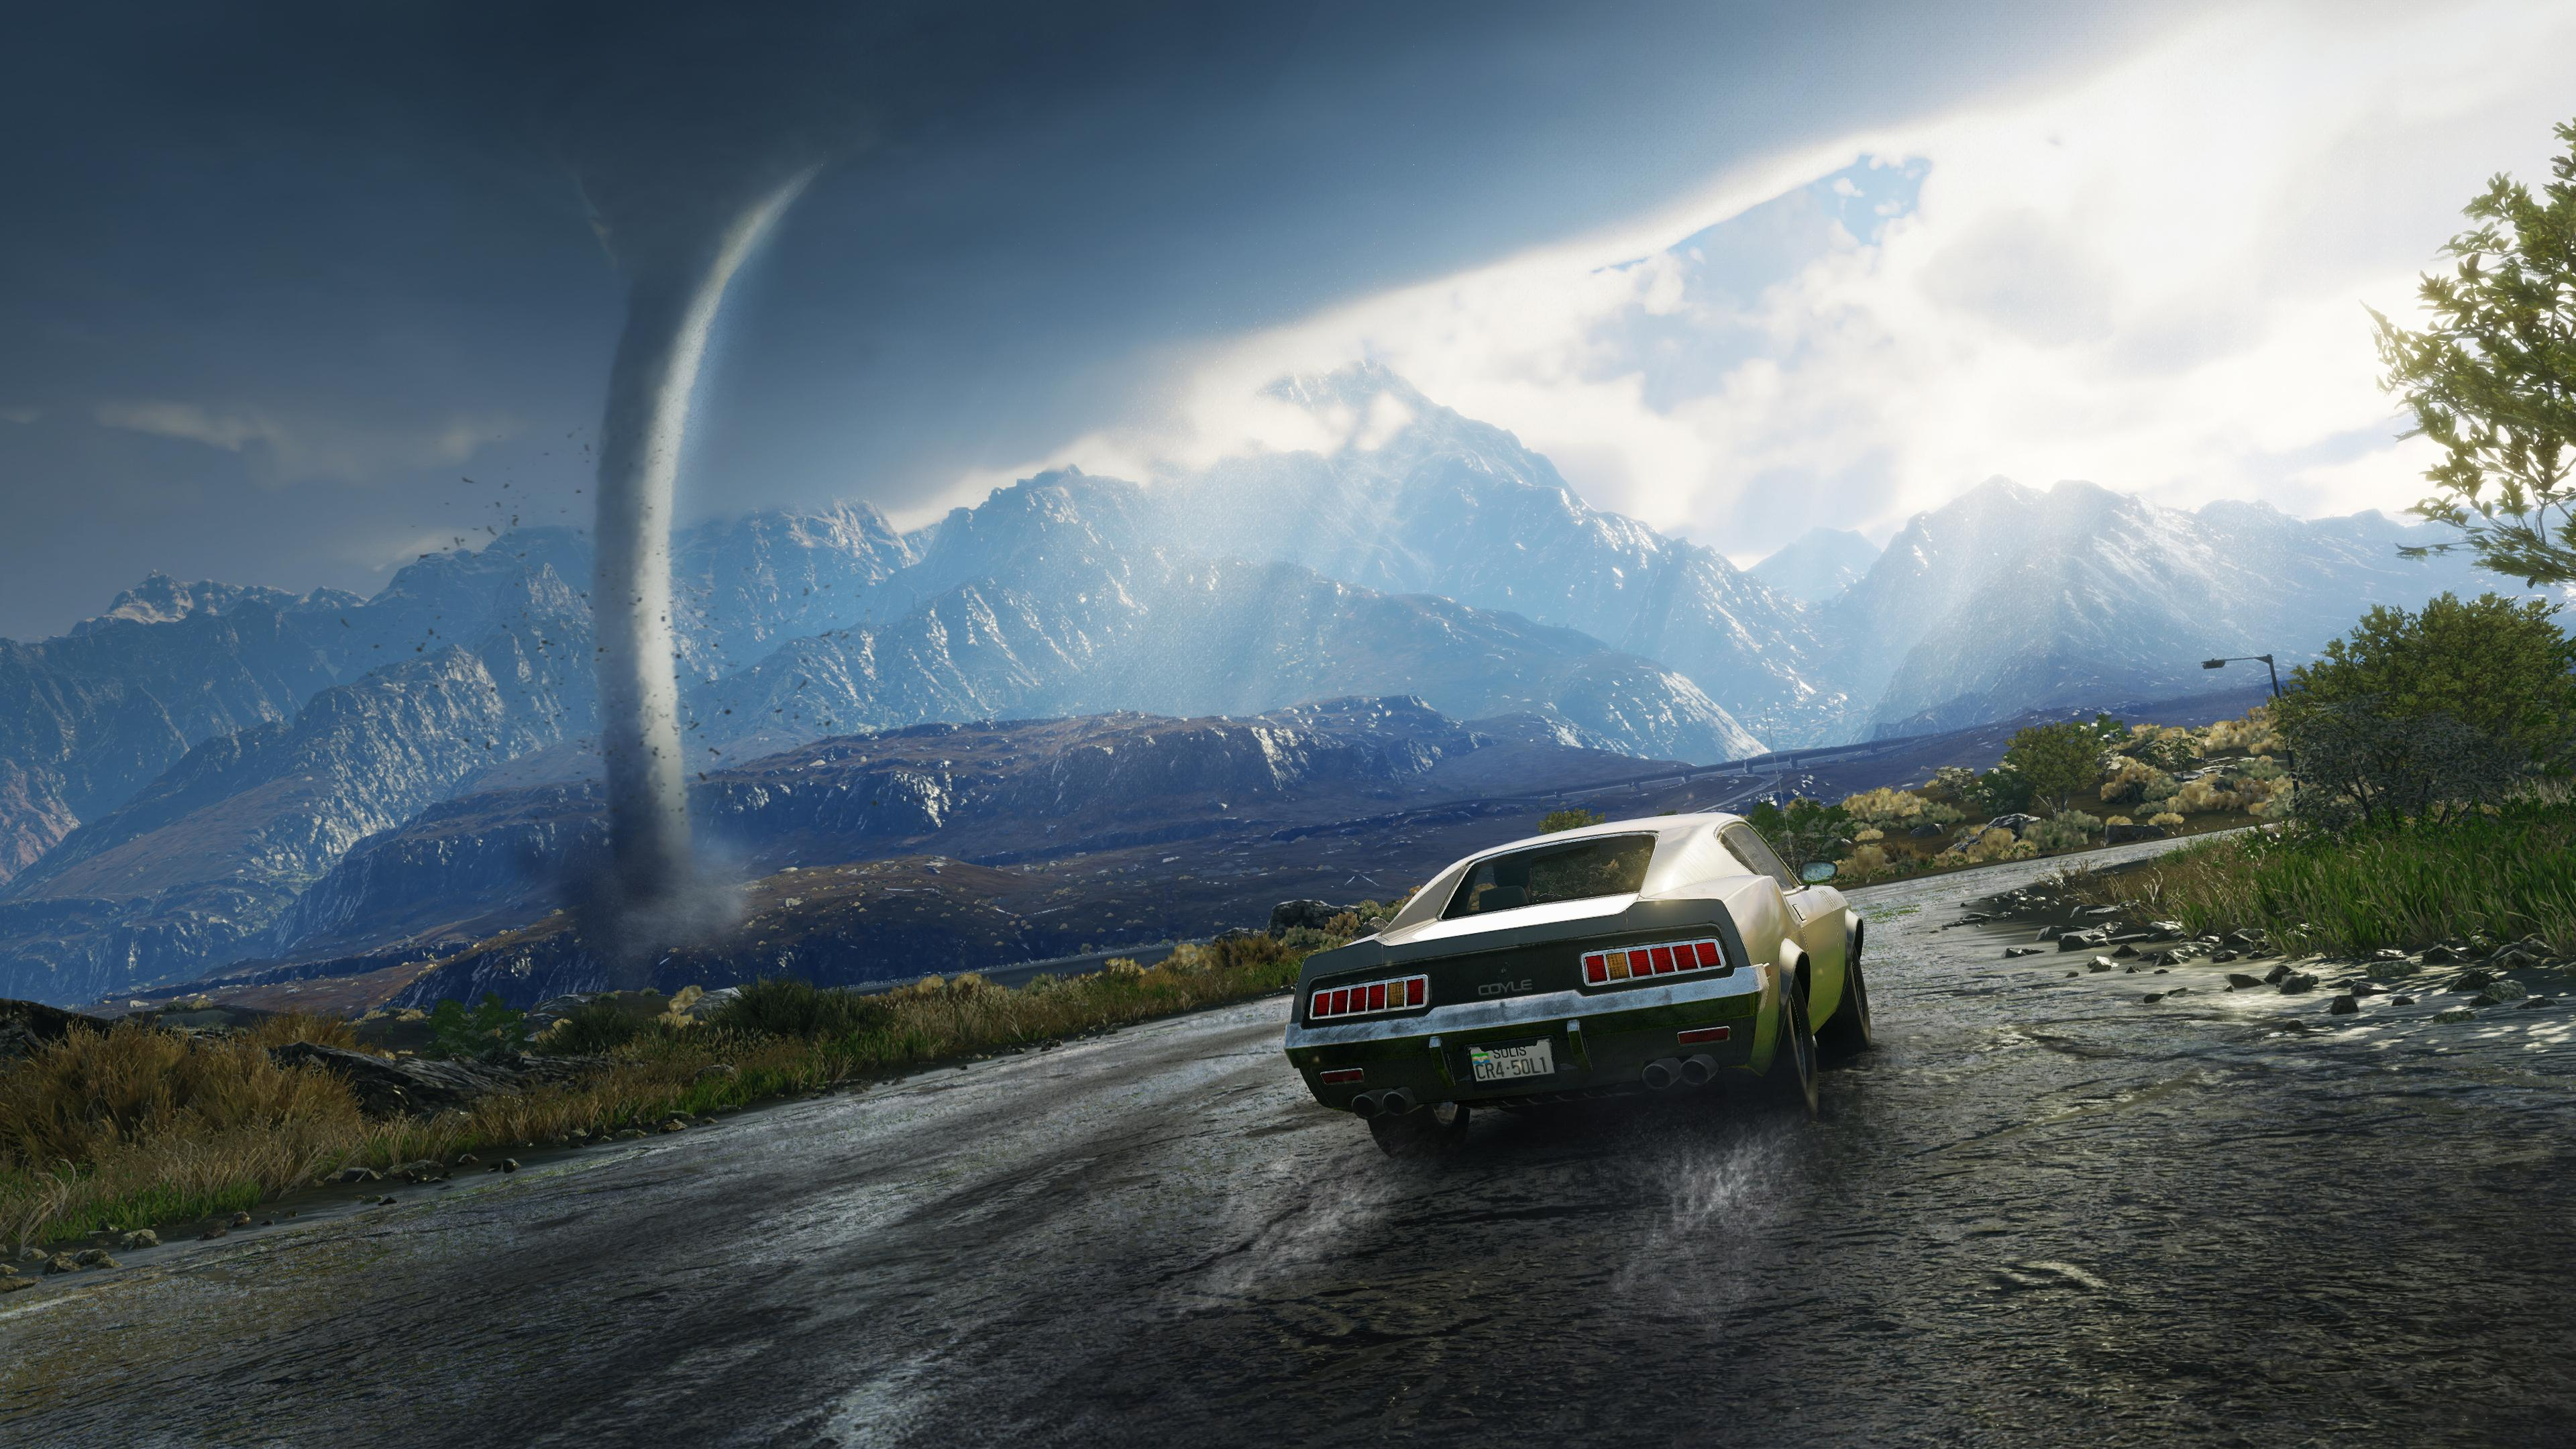 Tornadoes are just one of the impressive weather effects on show